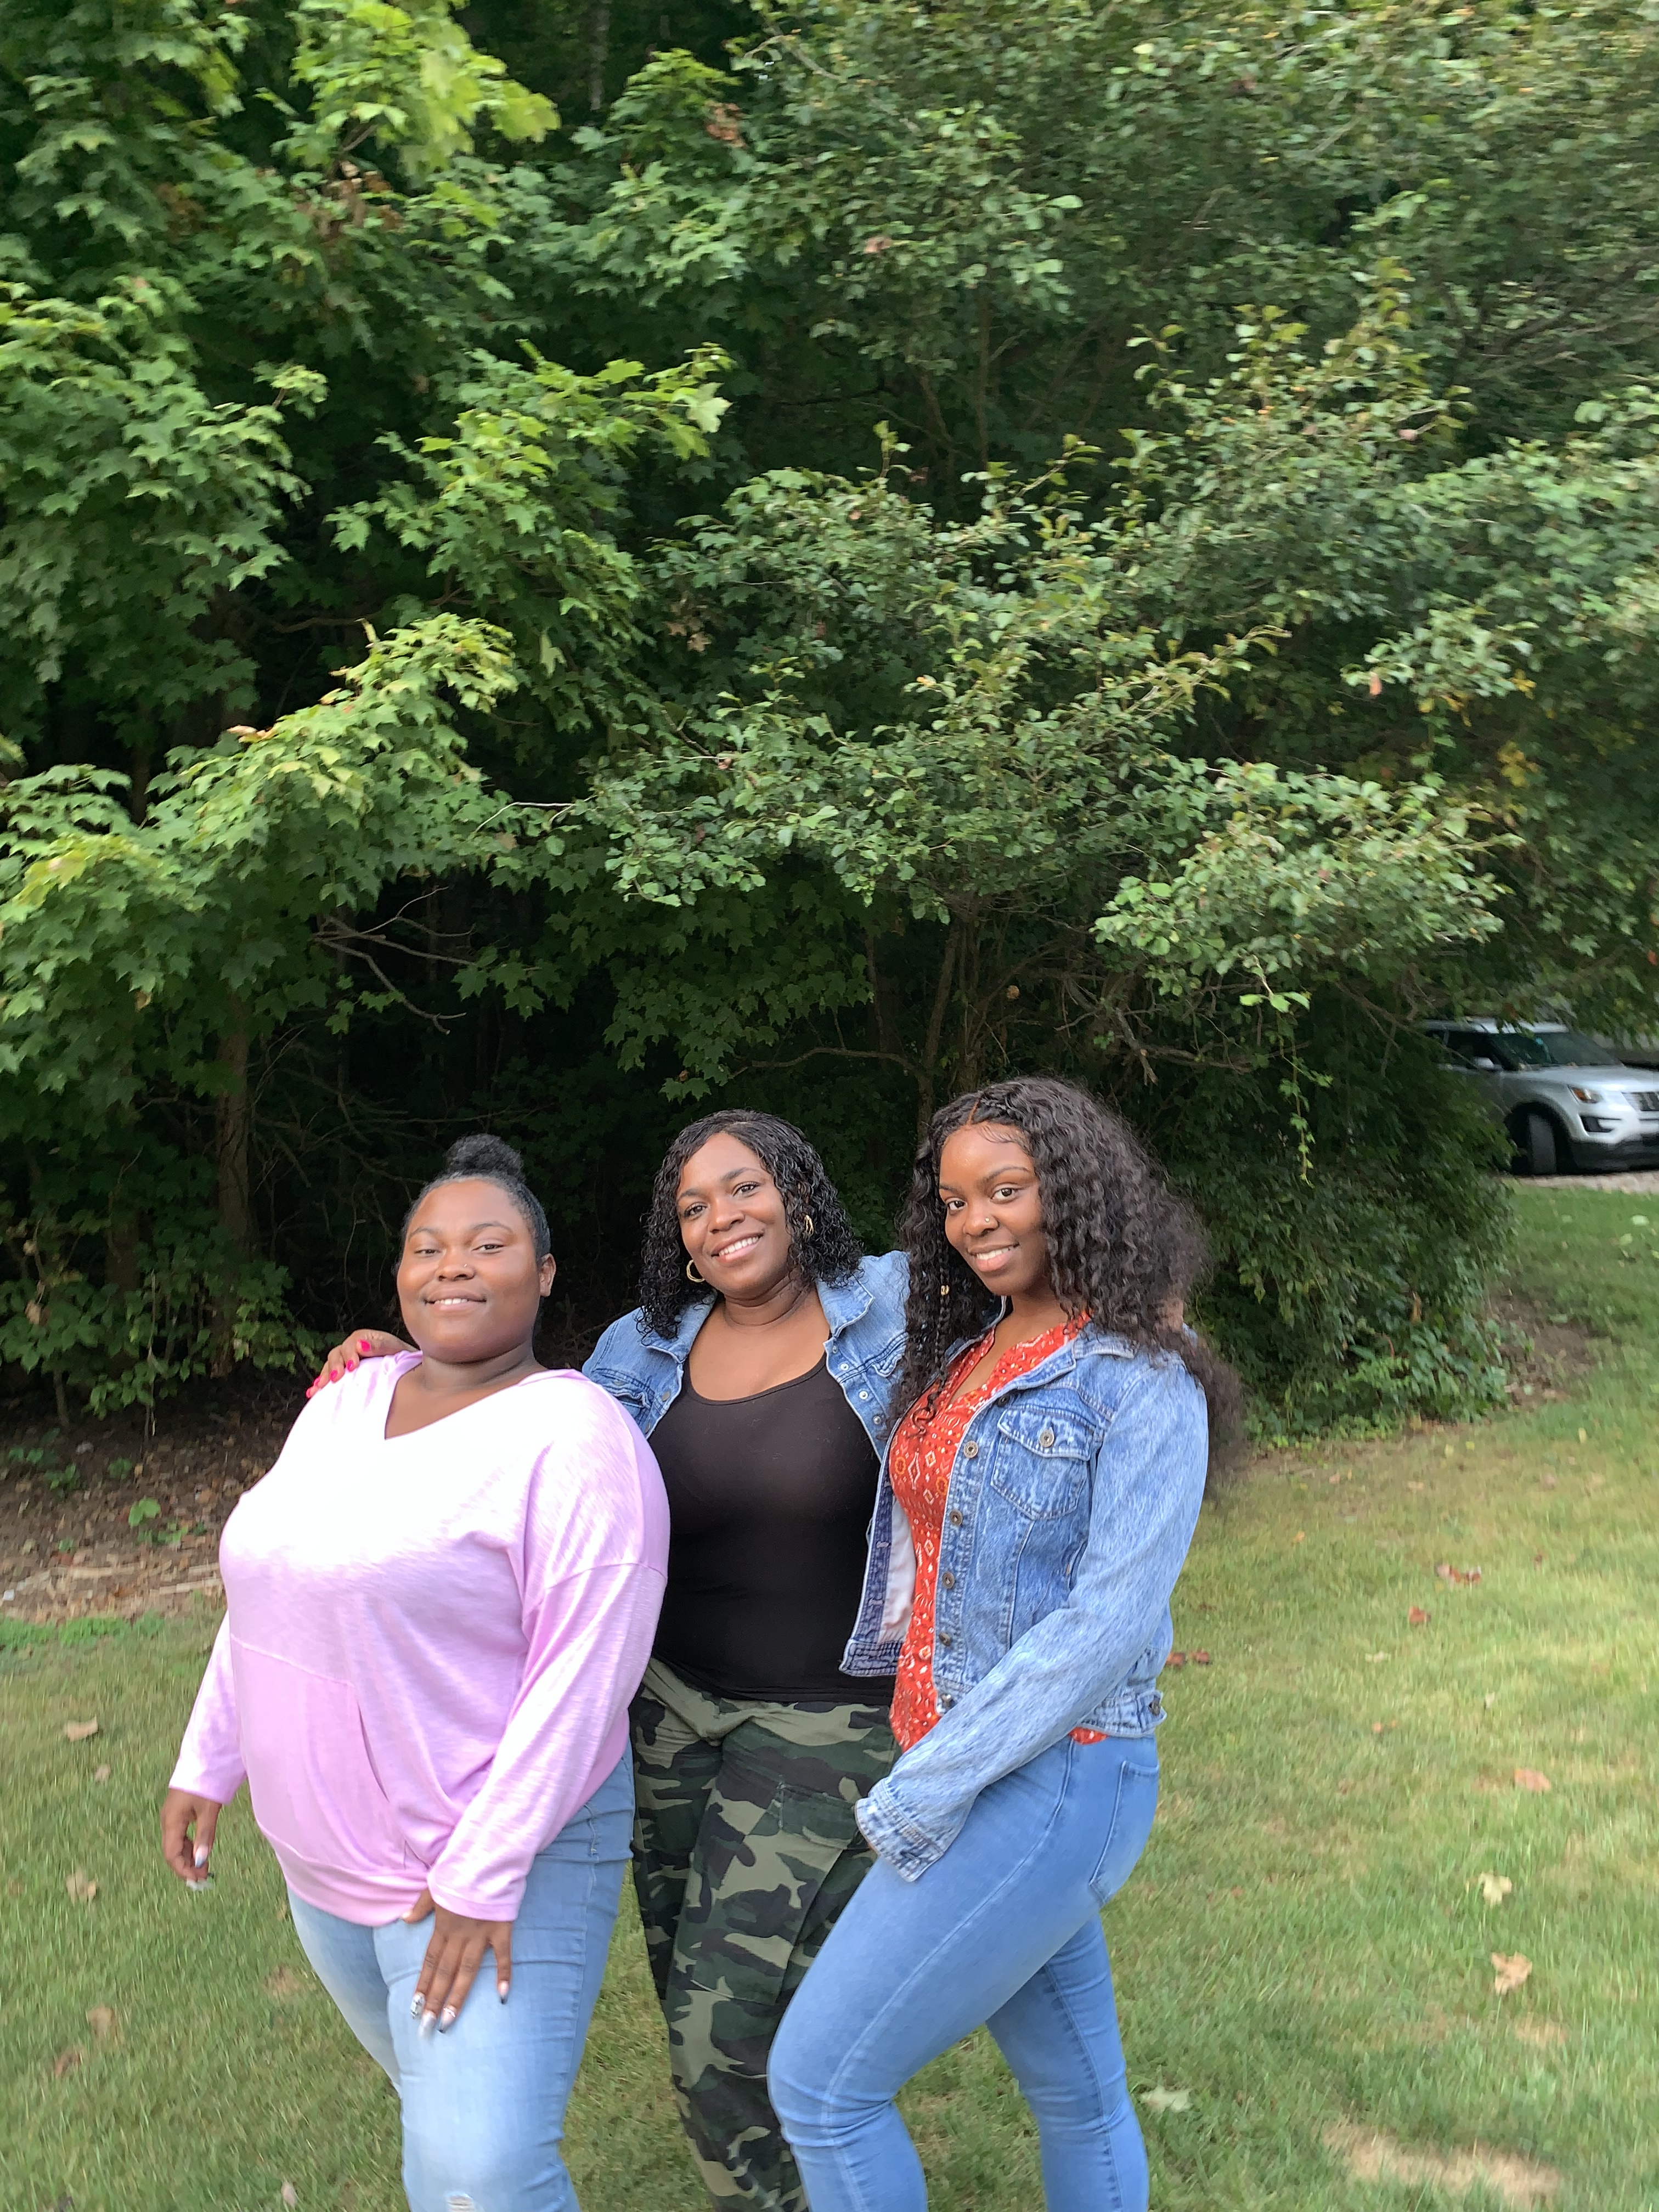 Kelley Williams-Bolar (center), pictured with her daughters Kayla (left) and Jada (right).